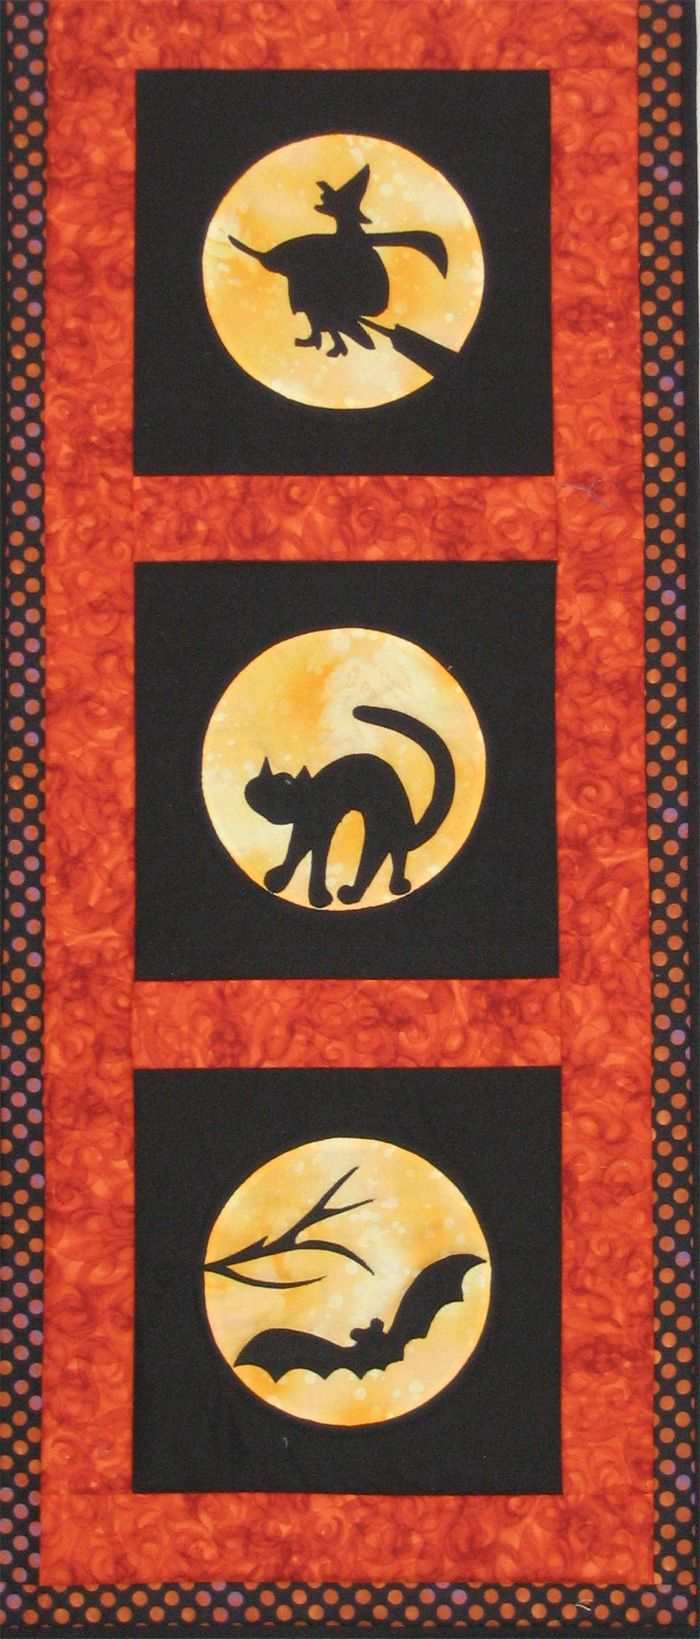 Halloween Hanging Quilt, made by Cathy Gentile at the Button Box Crafting Boutique in Wellesley, MA